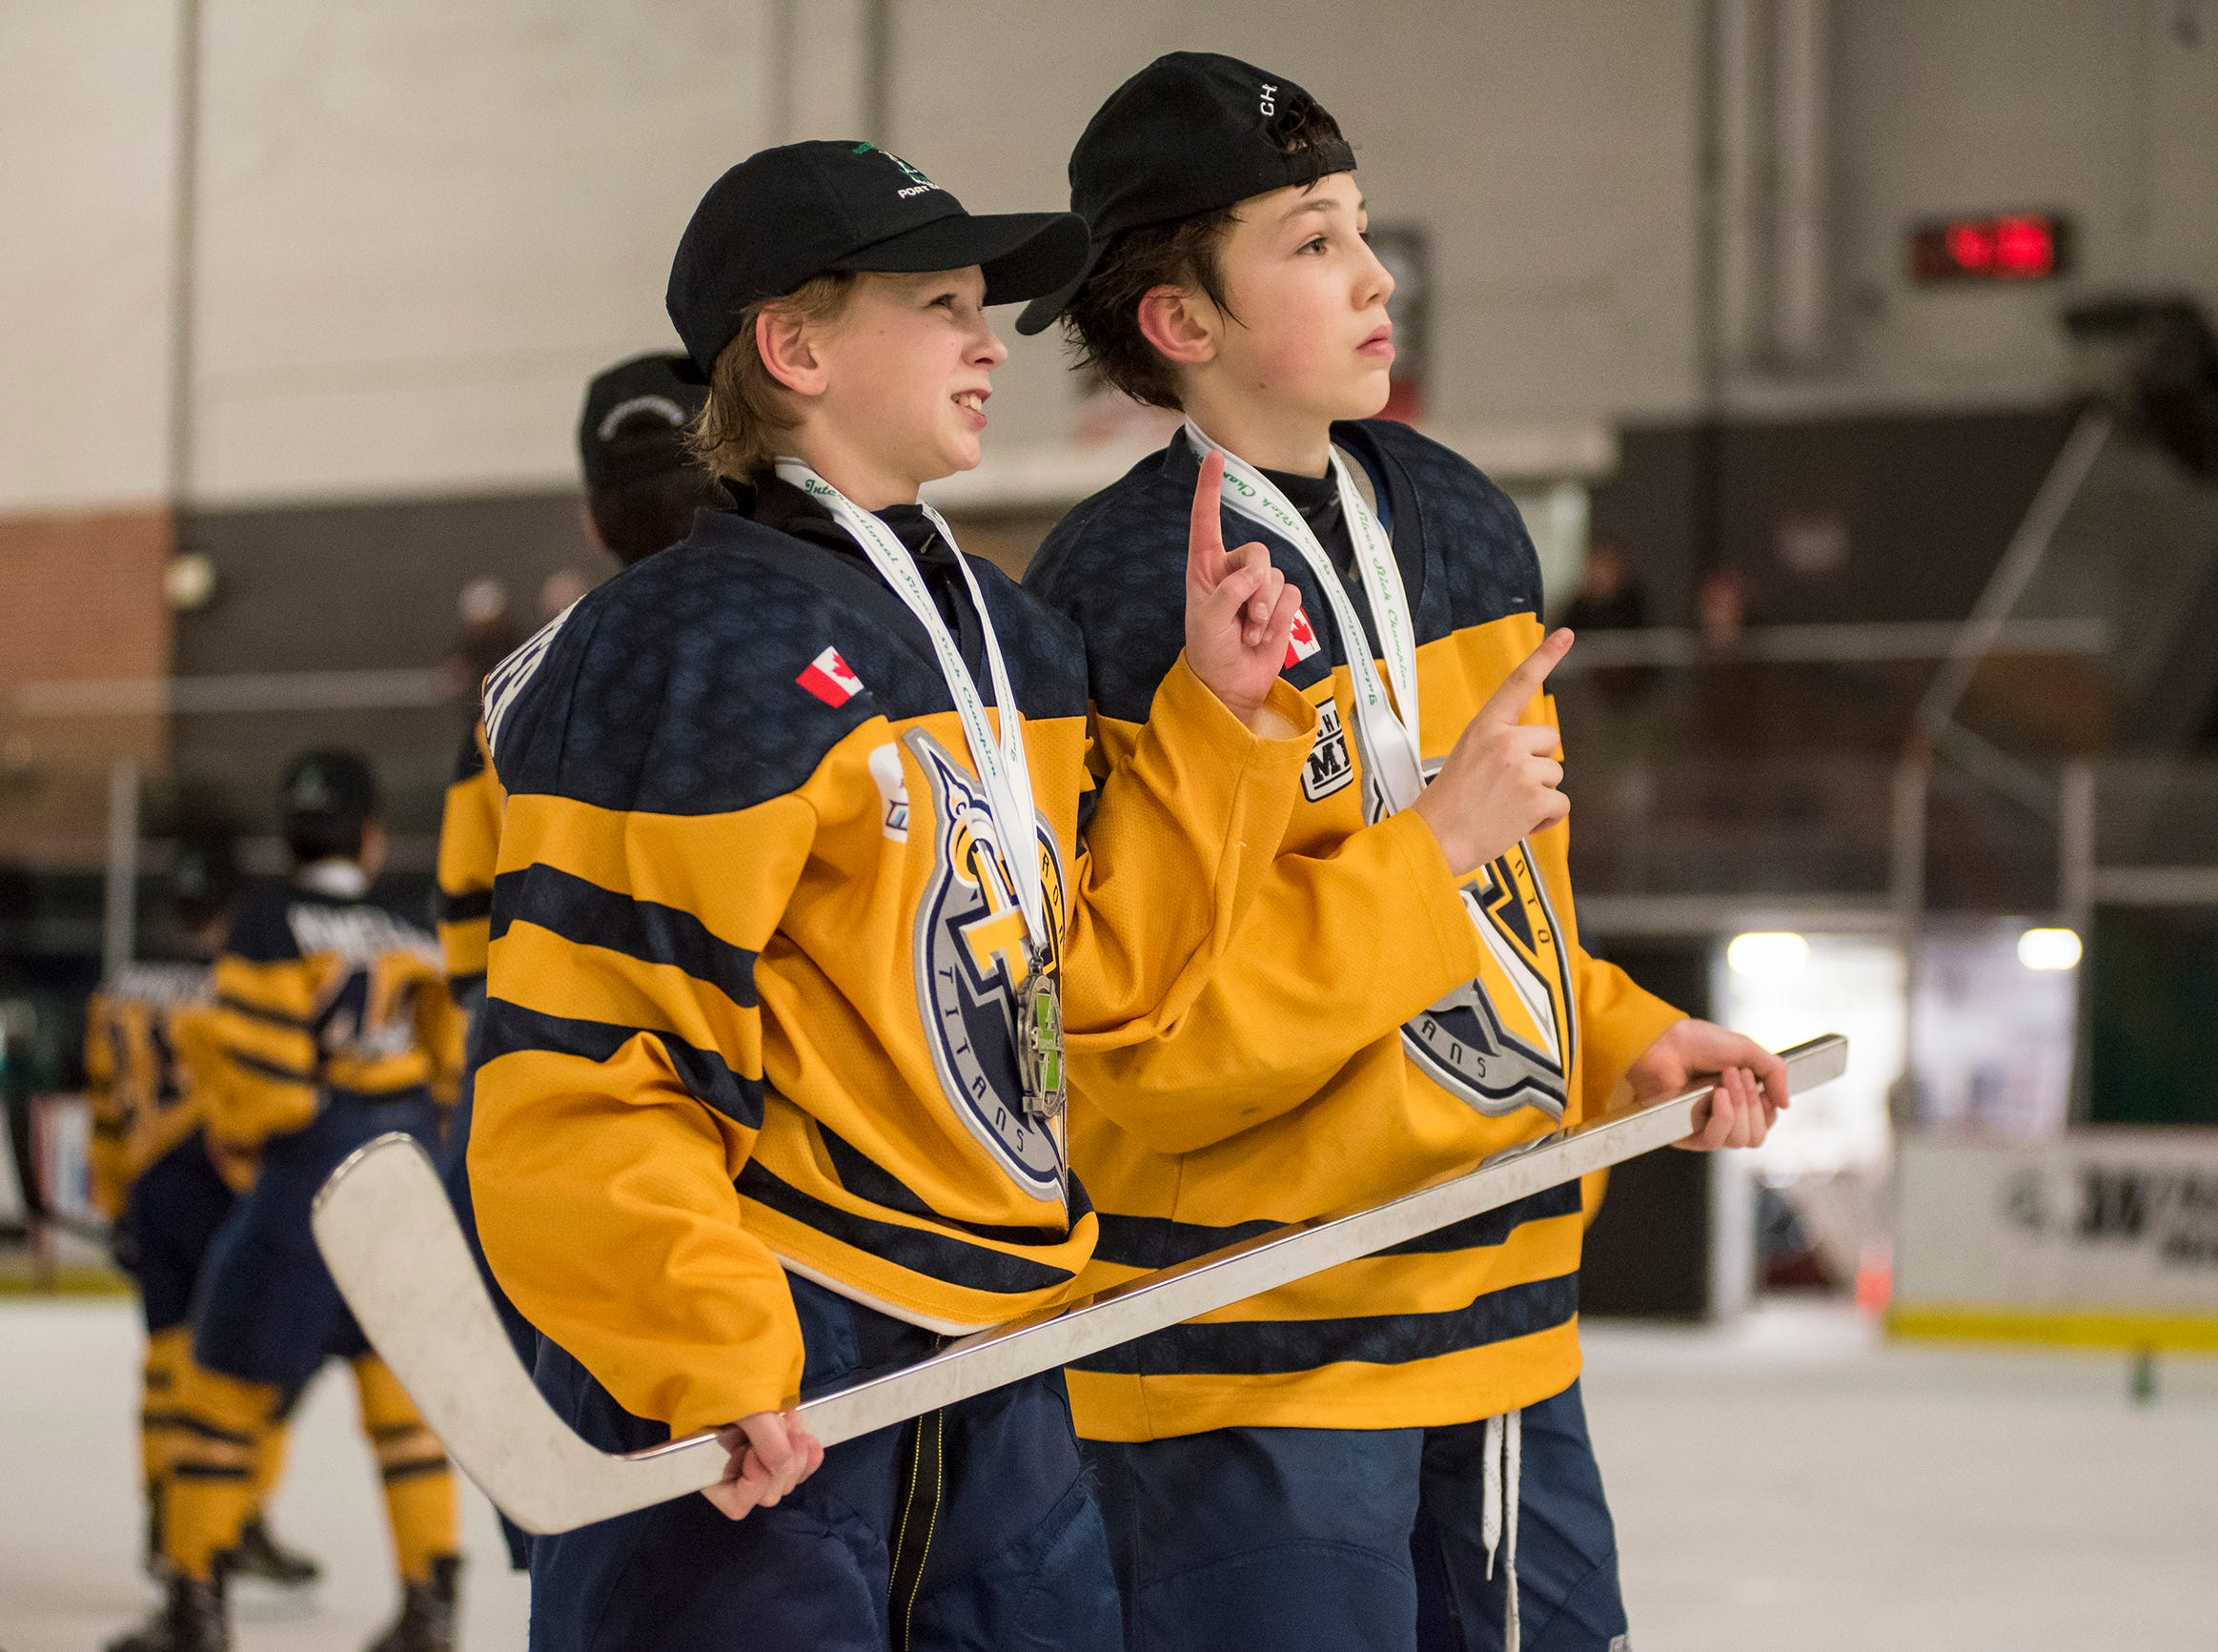 Toronto Titans forwards Nash Giles (right) and Nicholas Wellenreiter pose for photos with the Silver Stick after their team defeated Chicago Fury 5-4 in double overtime in the Silver Stick Finals PAAA Championship match Sunday, Jan. 6, 2019 at McMorran Arena.